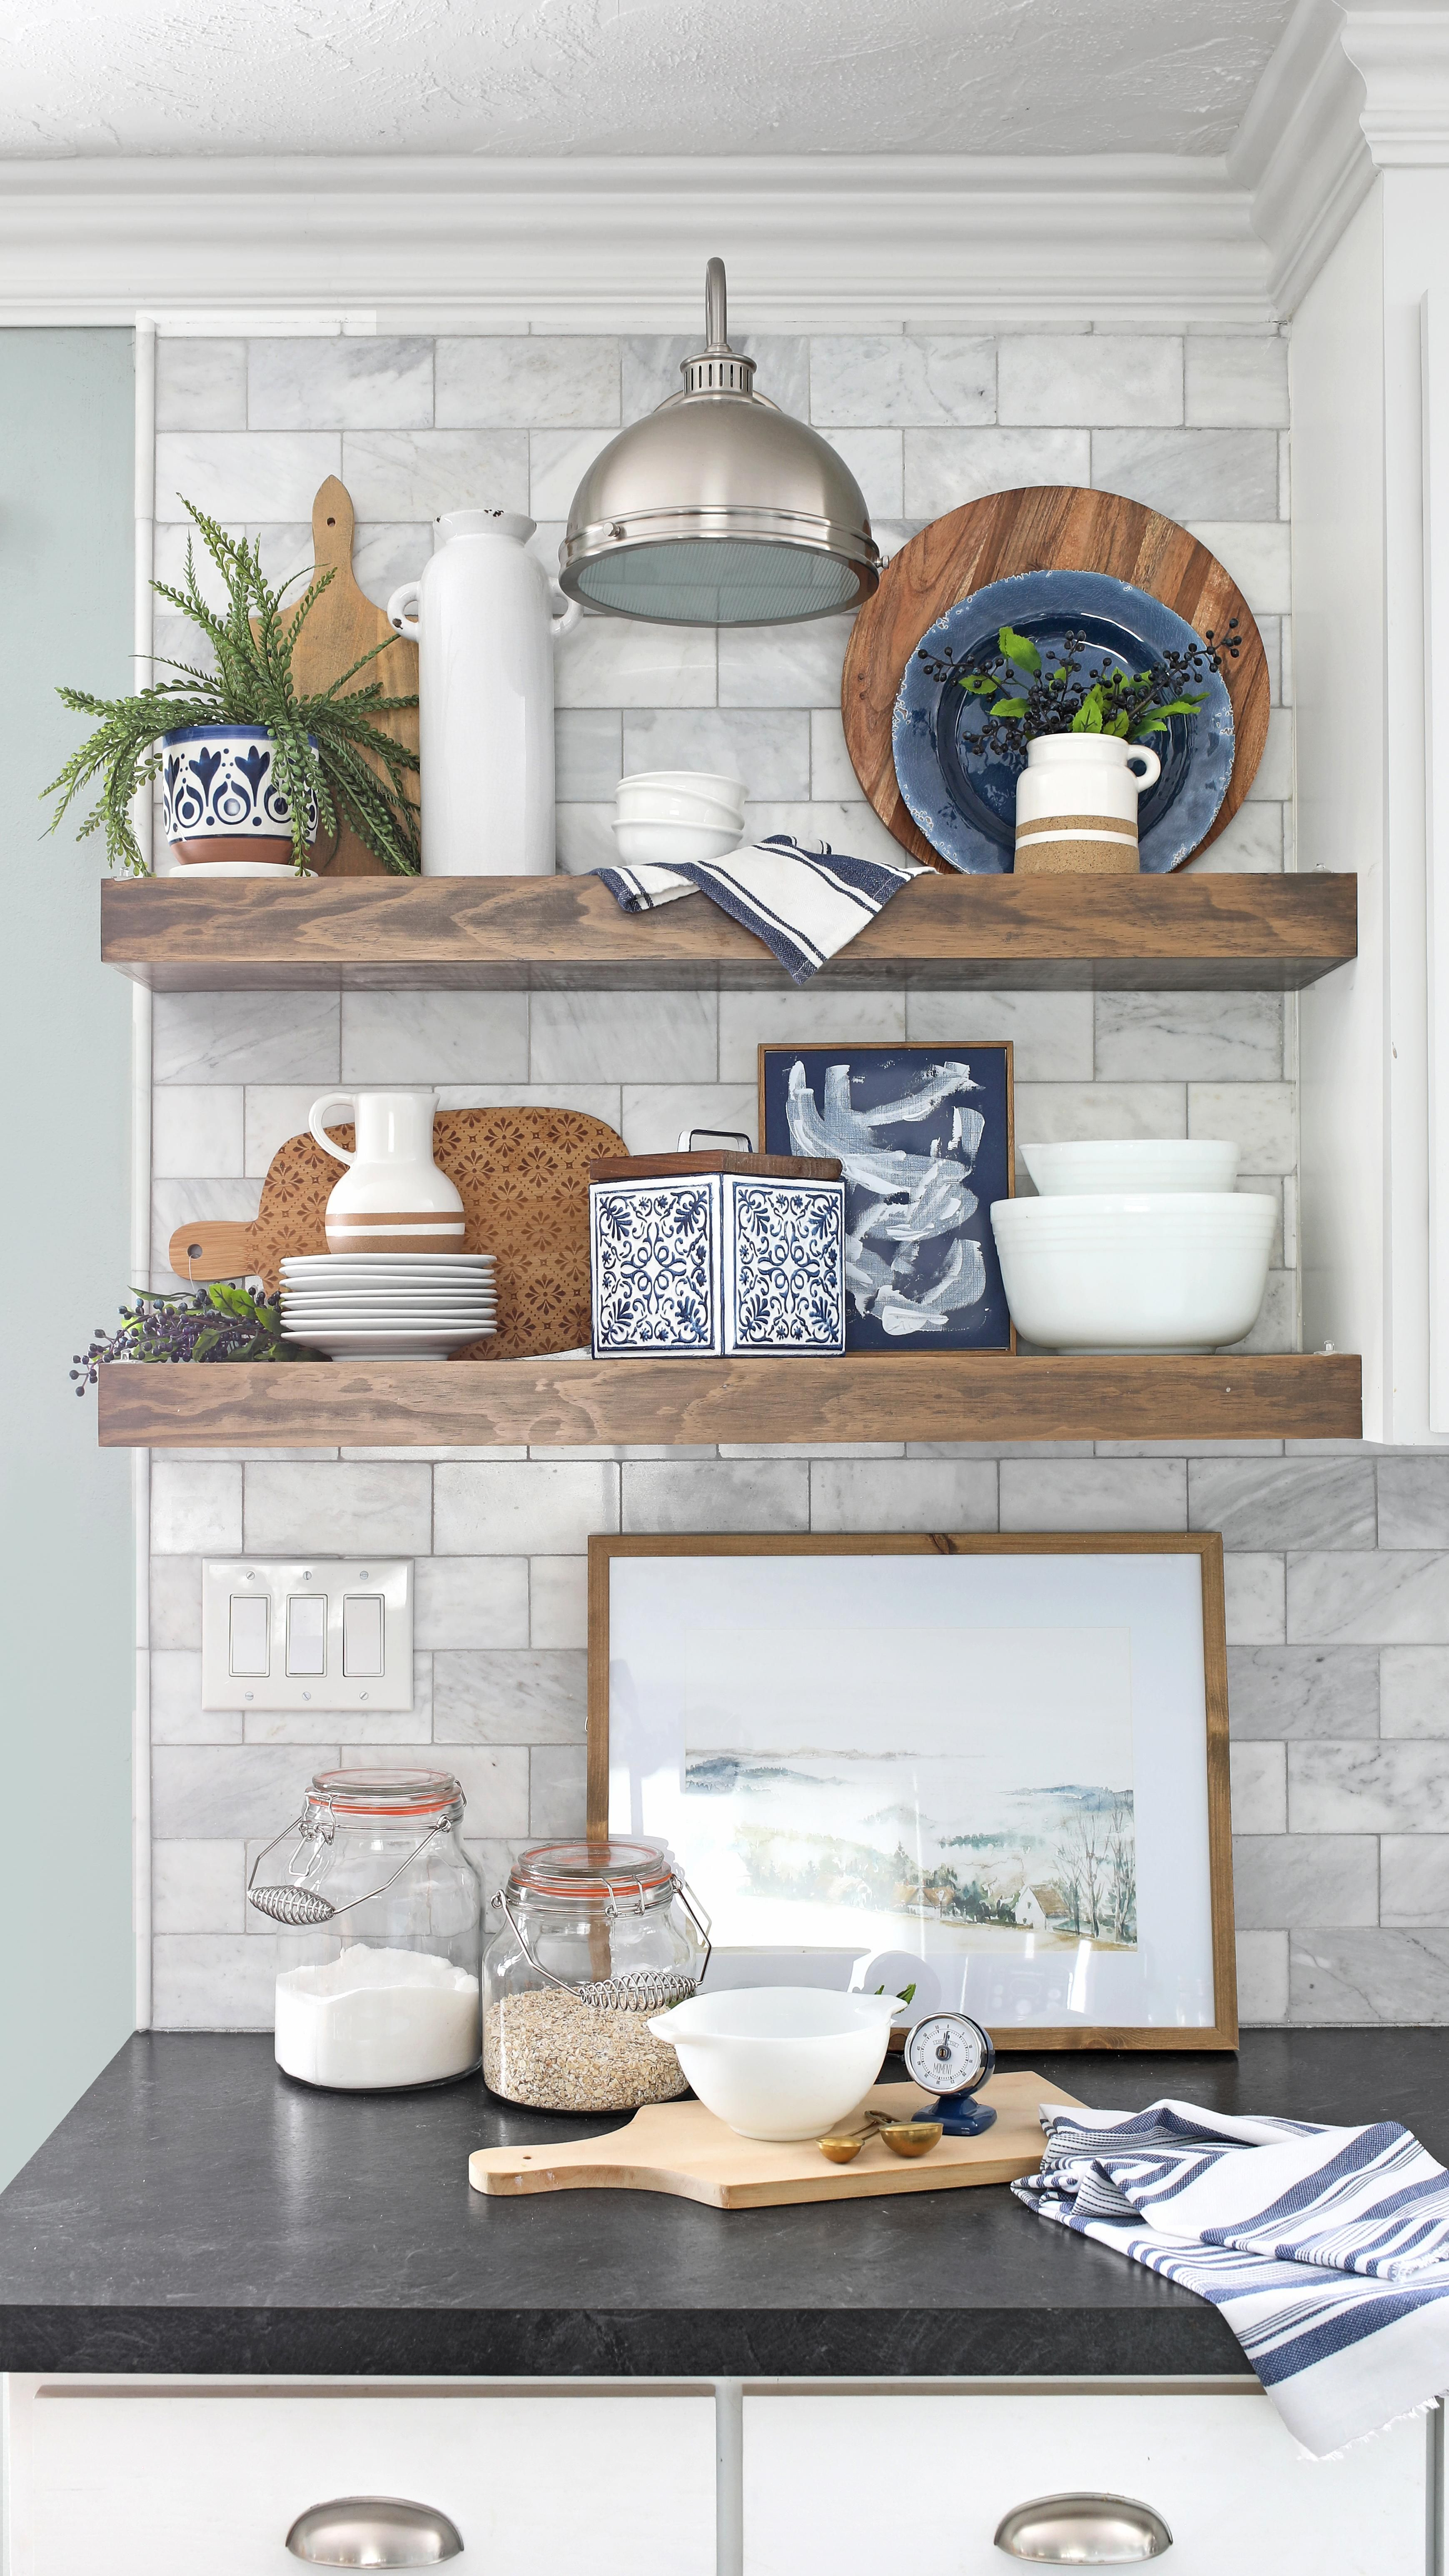 Shelf Styling Tips That Are Actually Helpful